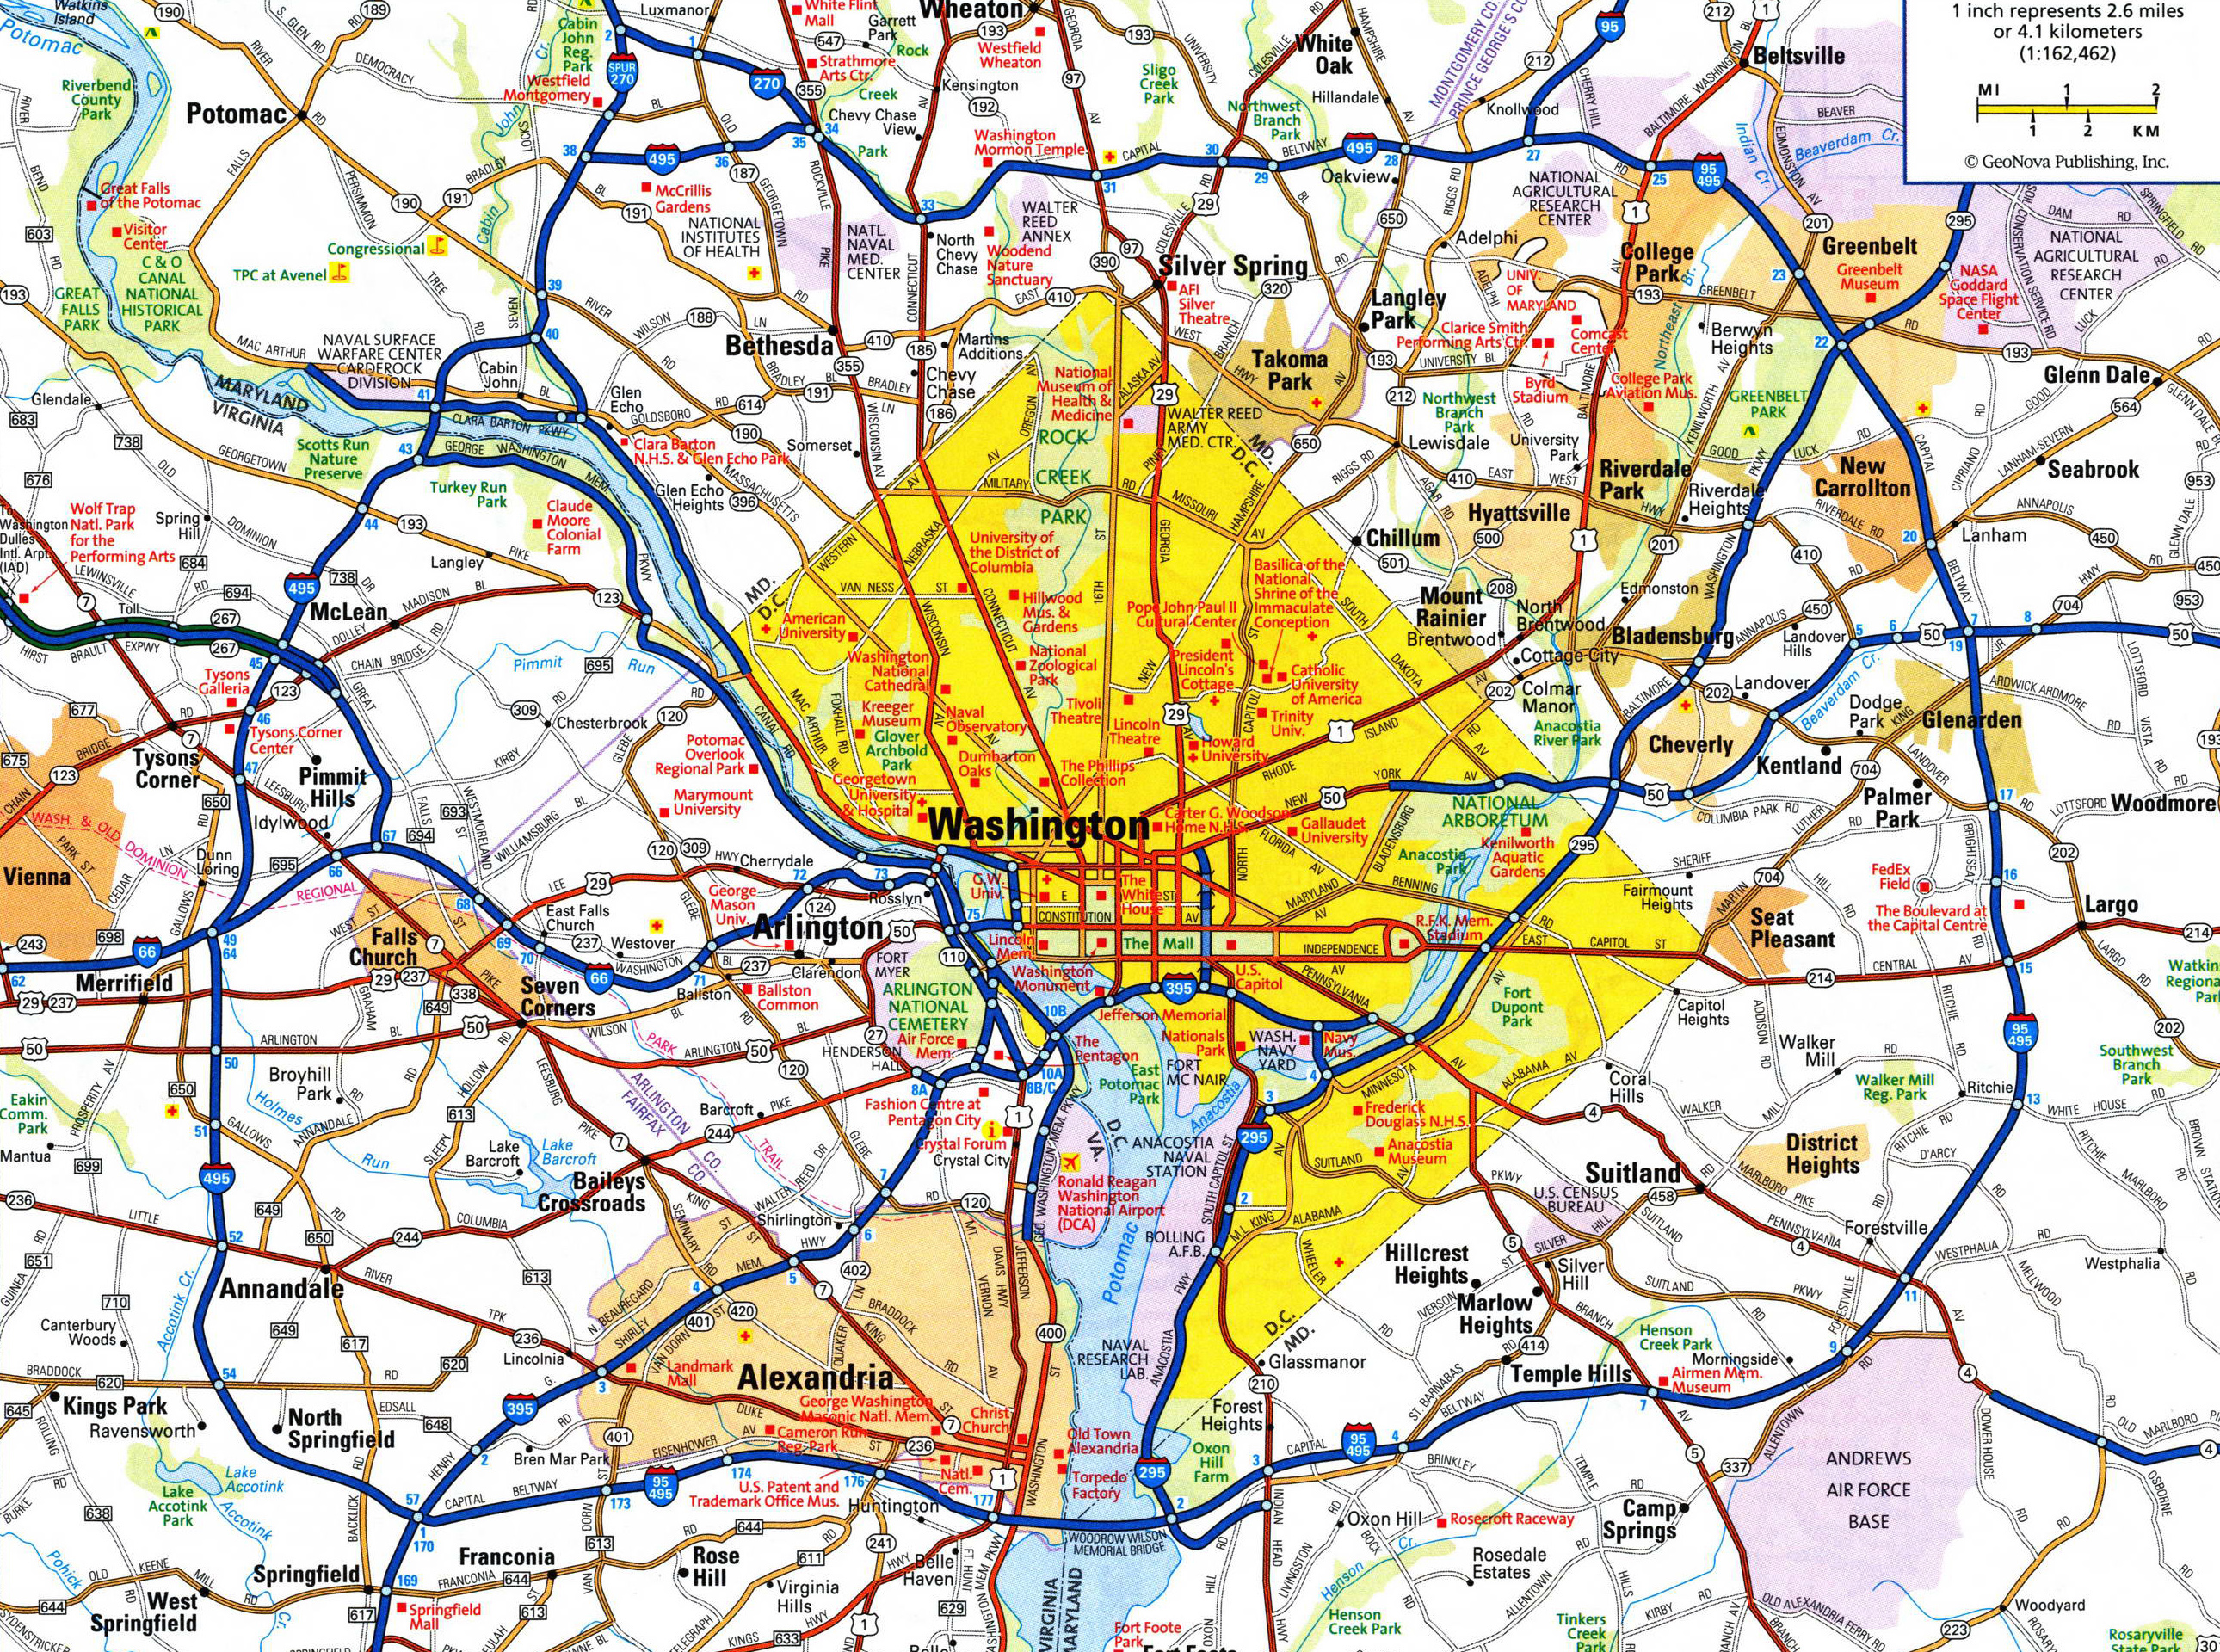 Large detailed roads and highways map of Washington D.C. area